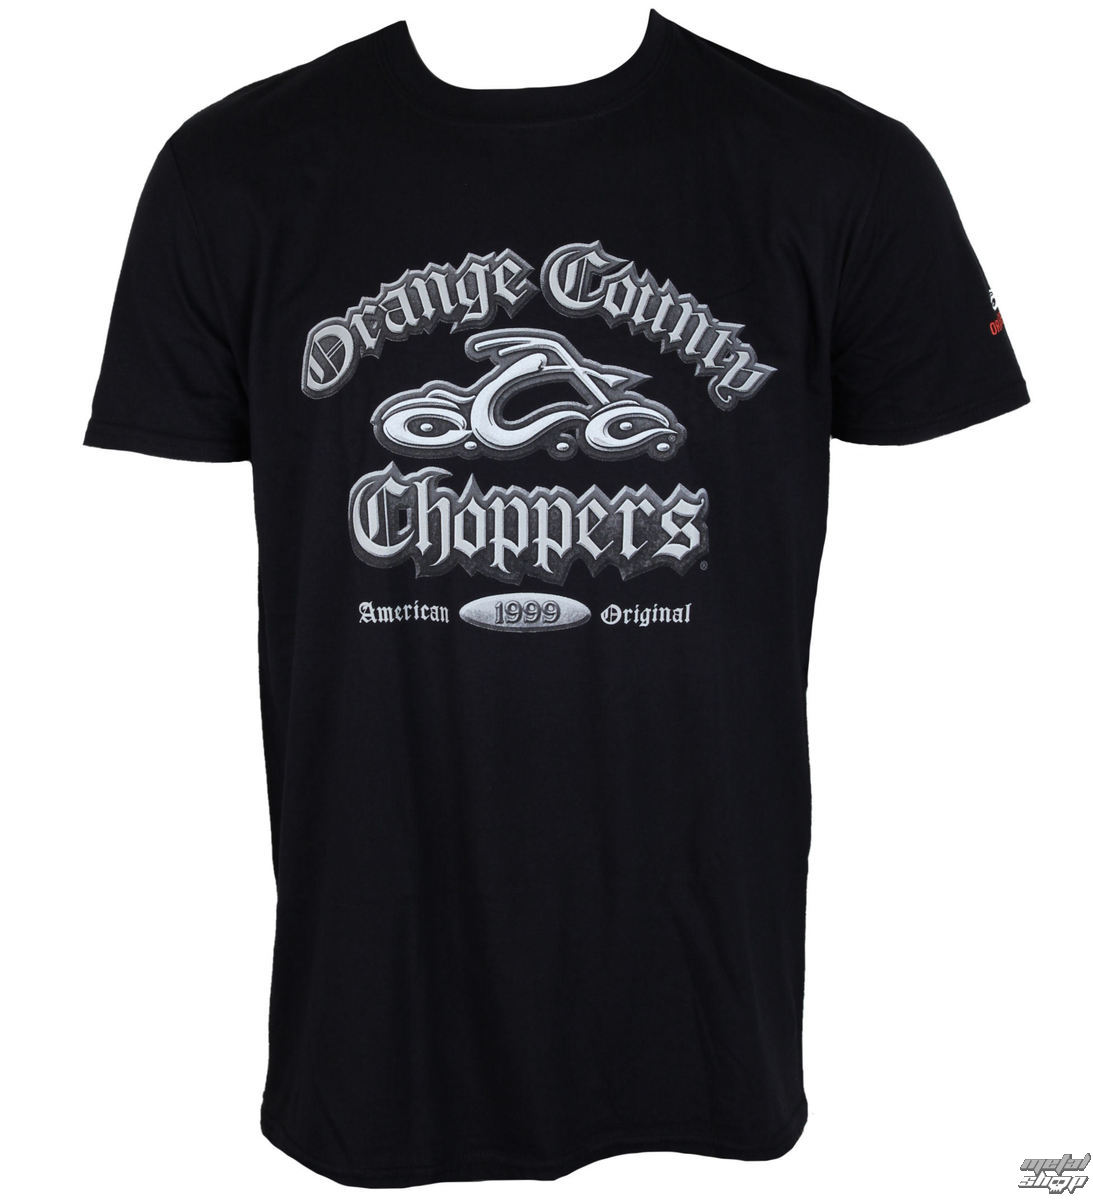 tričko pánské ORANGE COUNTY CHOPPERS - Old English - Black